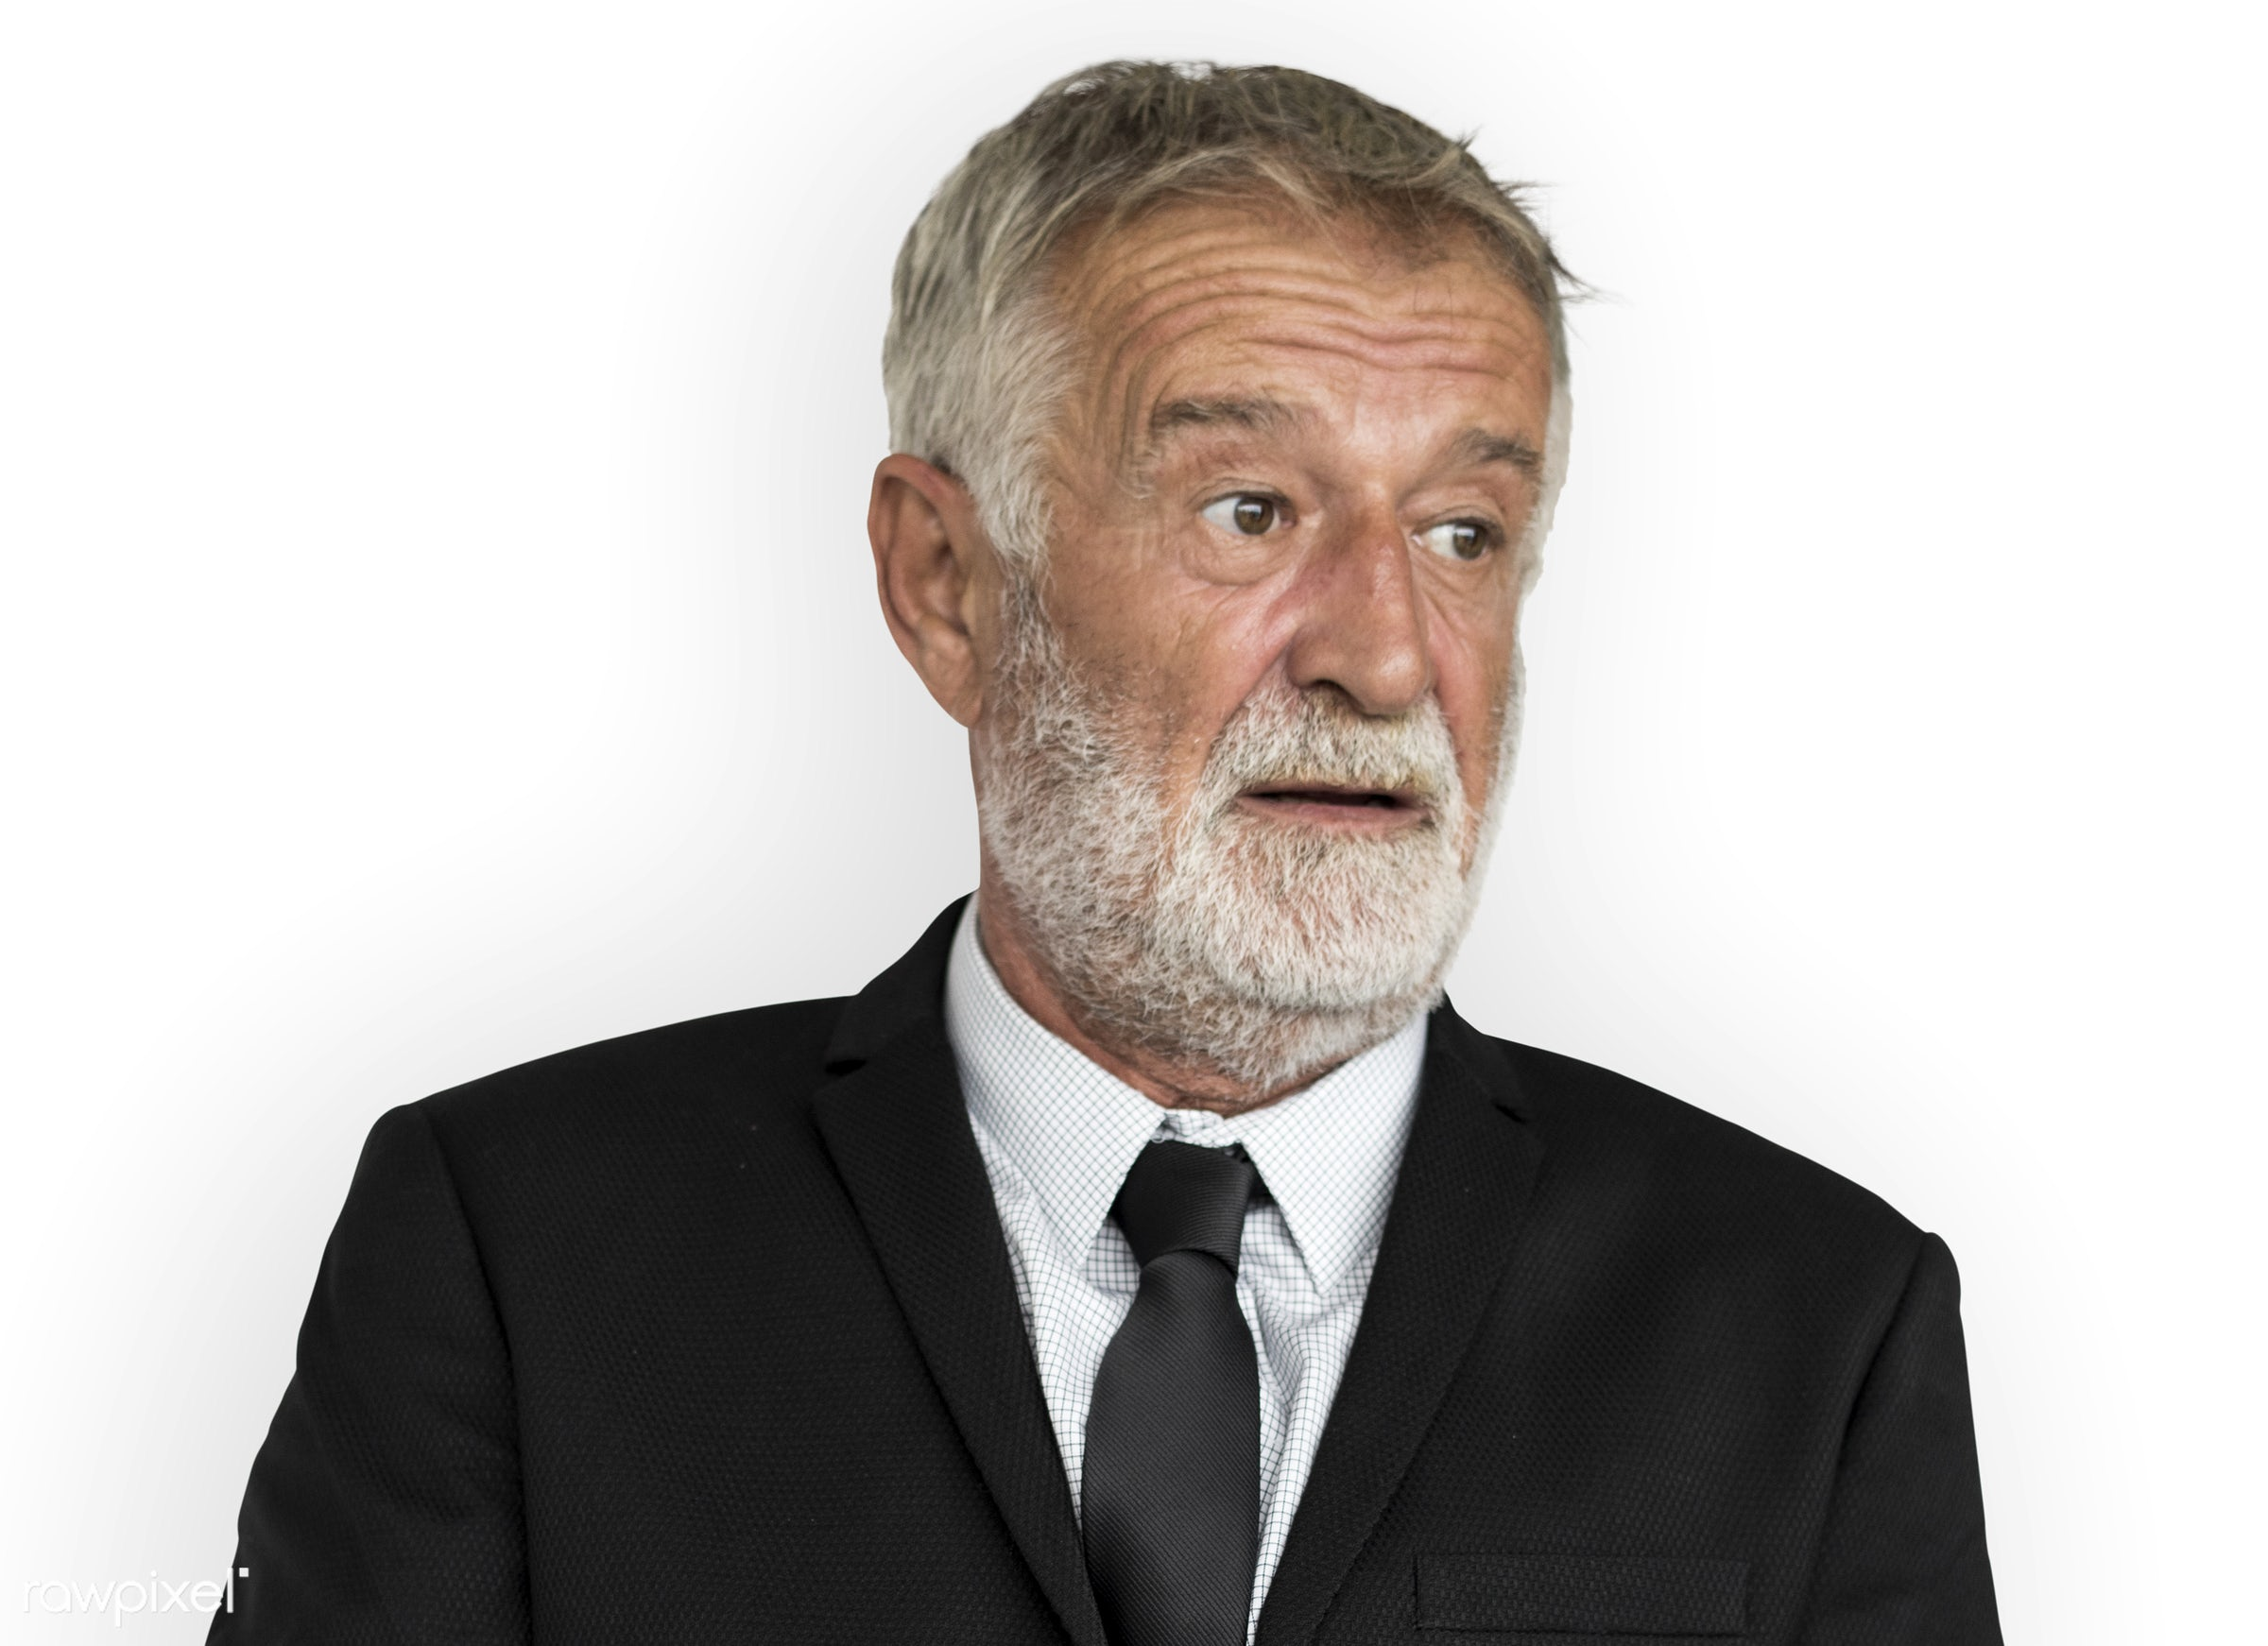 expression, studio, old, person, isolated on white, people, business, caucasian, focused, working, serious, man, neutral...